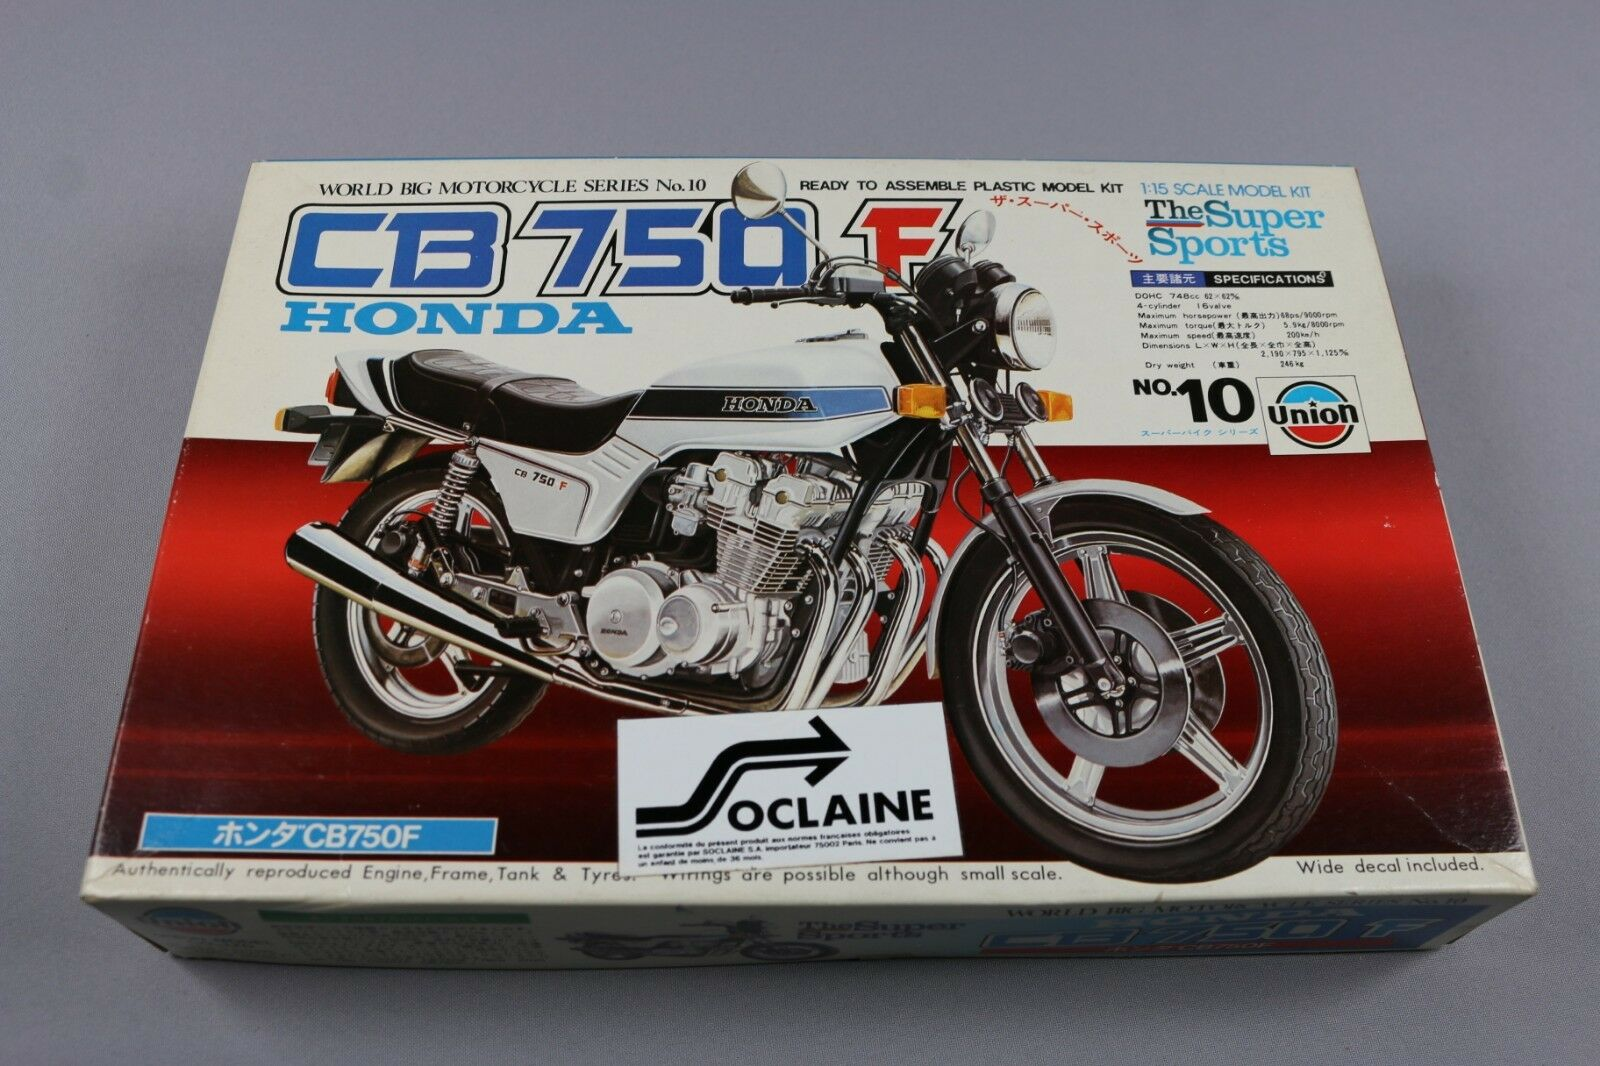 Zf1008 Union 1 15 Maqueta M-10 700 Honda Cb750f The Super Deportes Big Moto